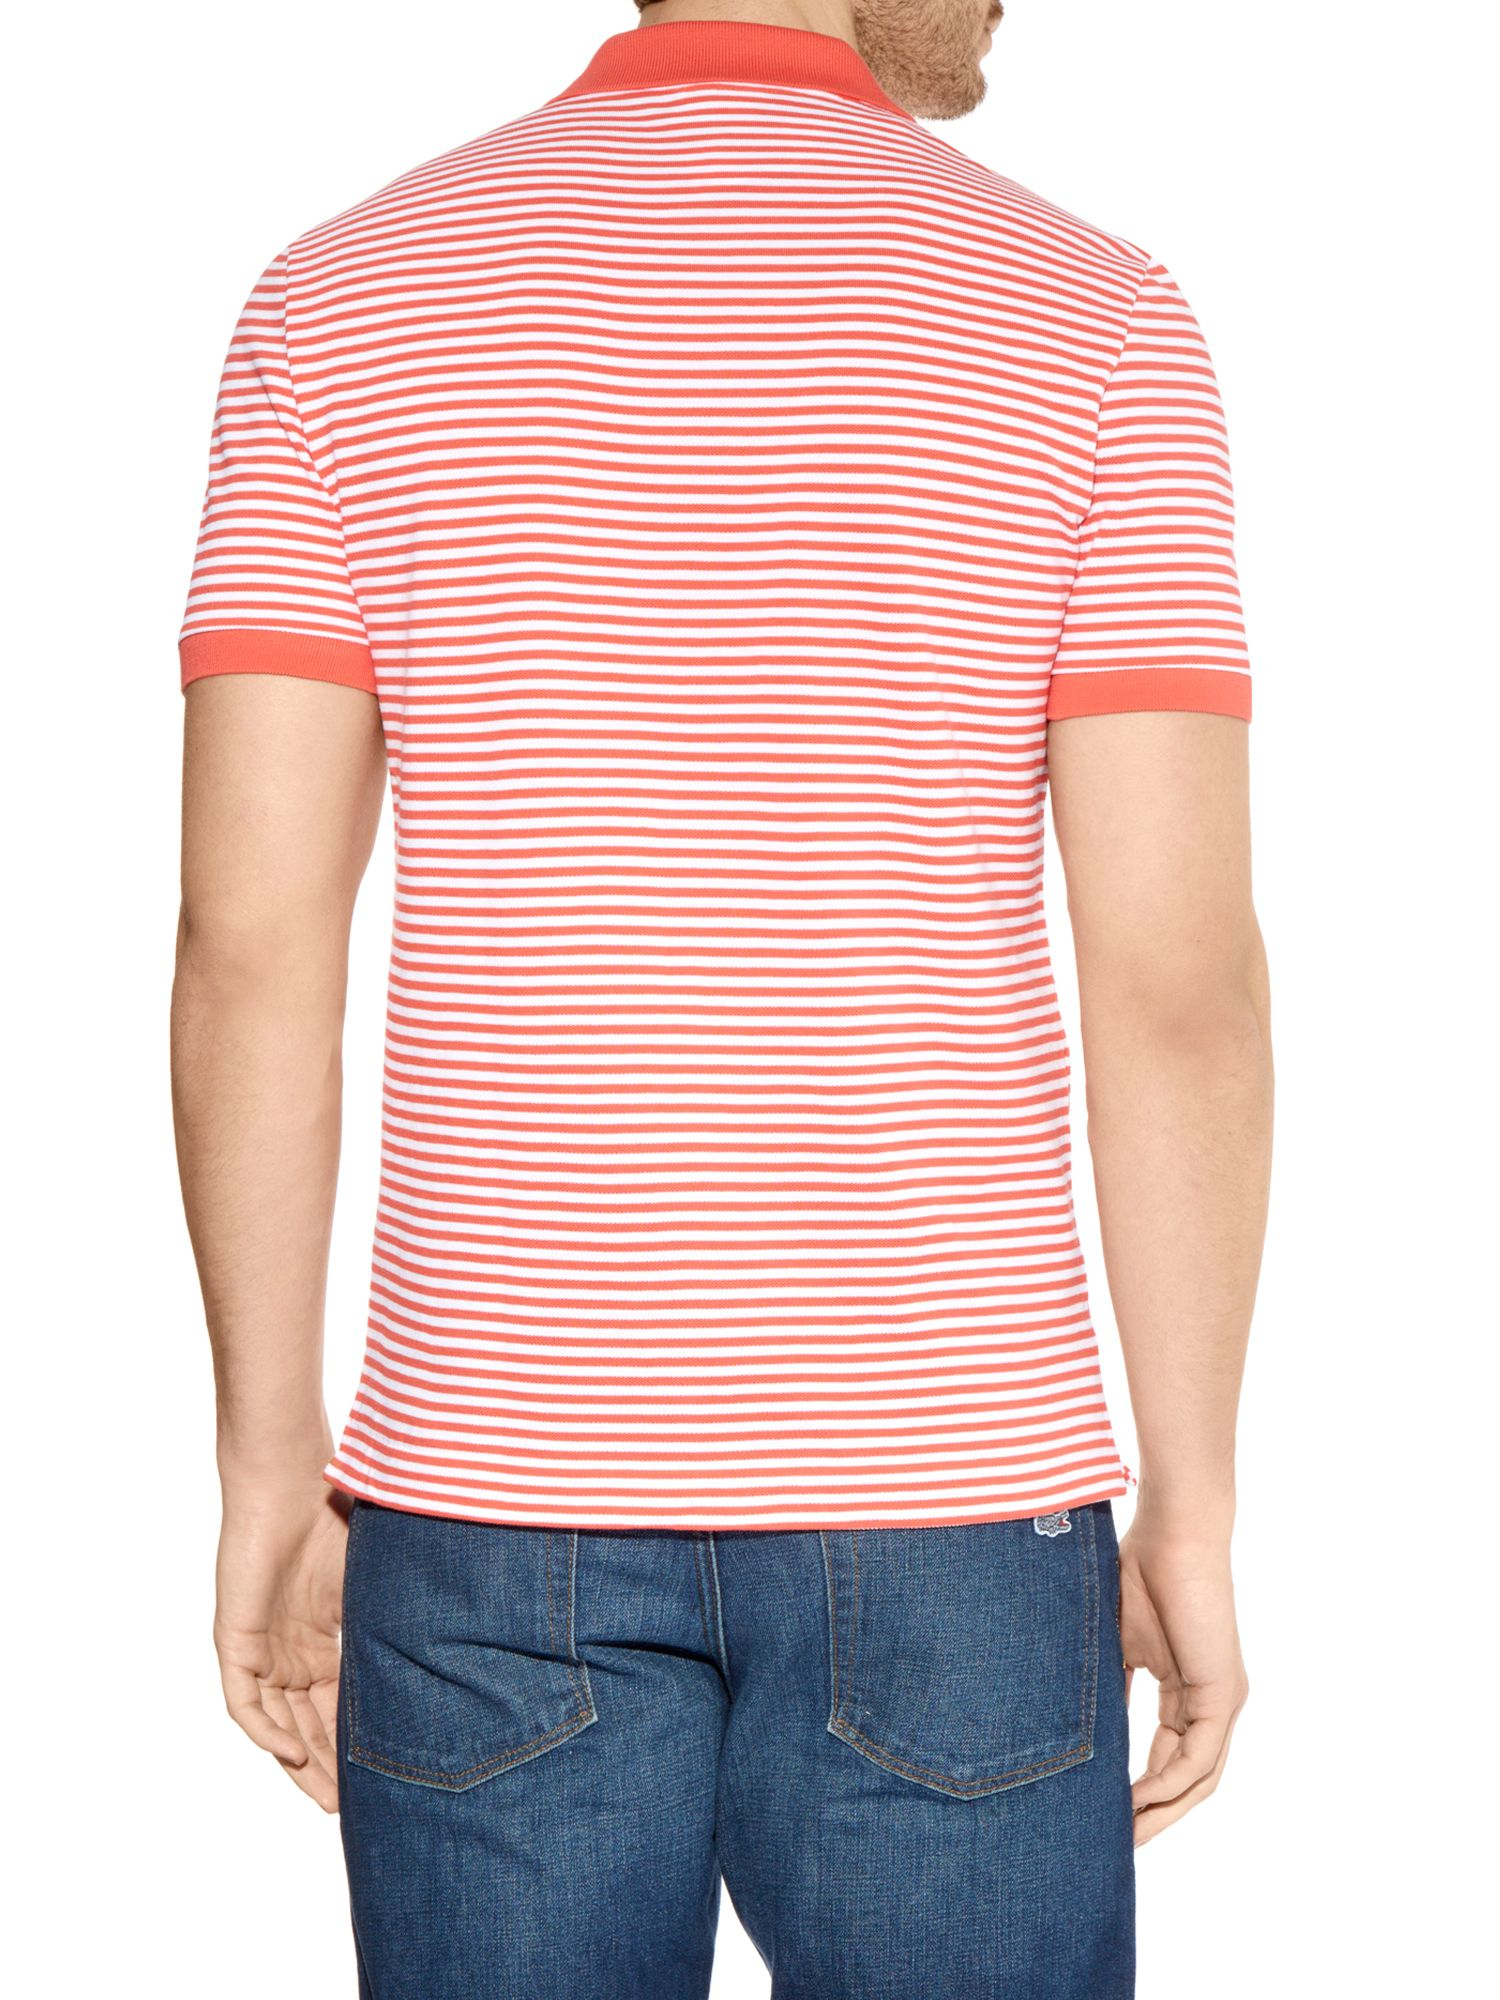 Striped Tees for Men. Stock your closet with basics you'll wear forever, like men's striped tees that come in every color under the sun. A man can never have enough striped t-shirts: between work, hitting the beach and going to the mall, a guy can go through a lot of these.